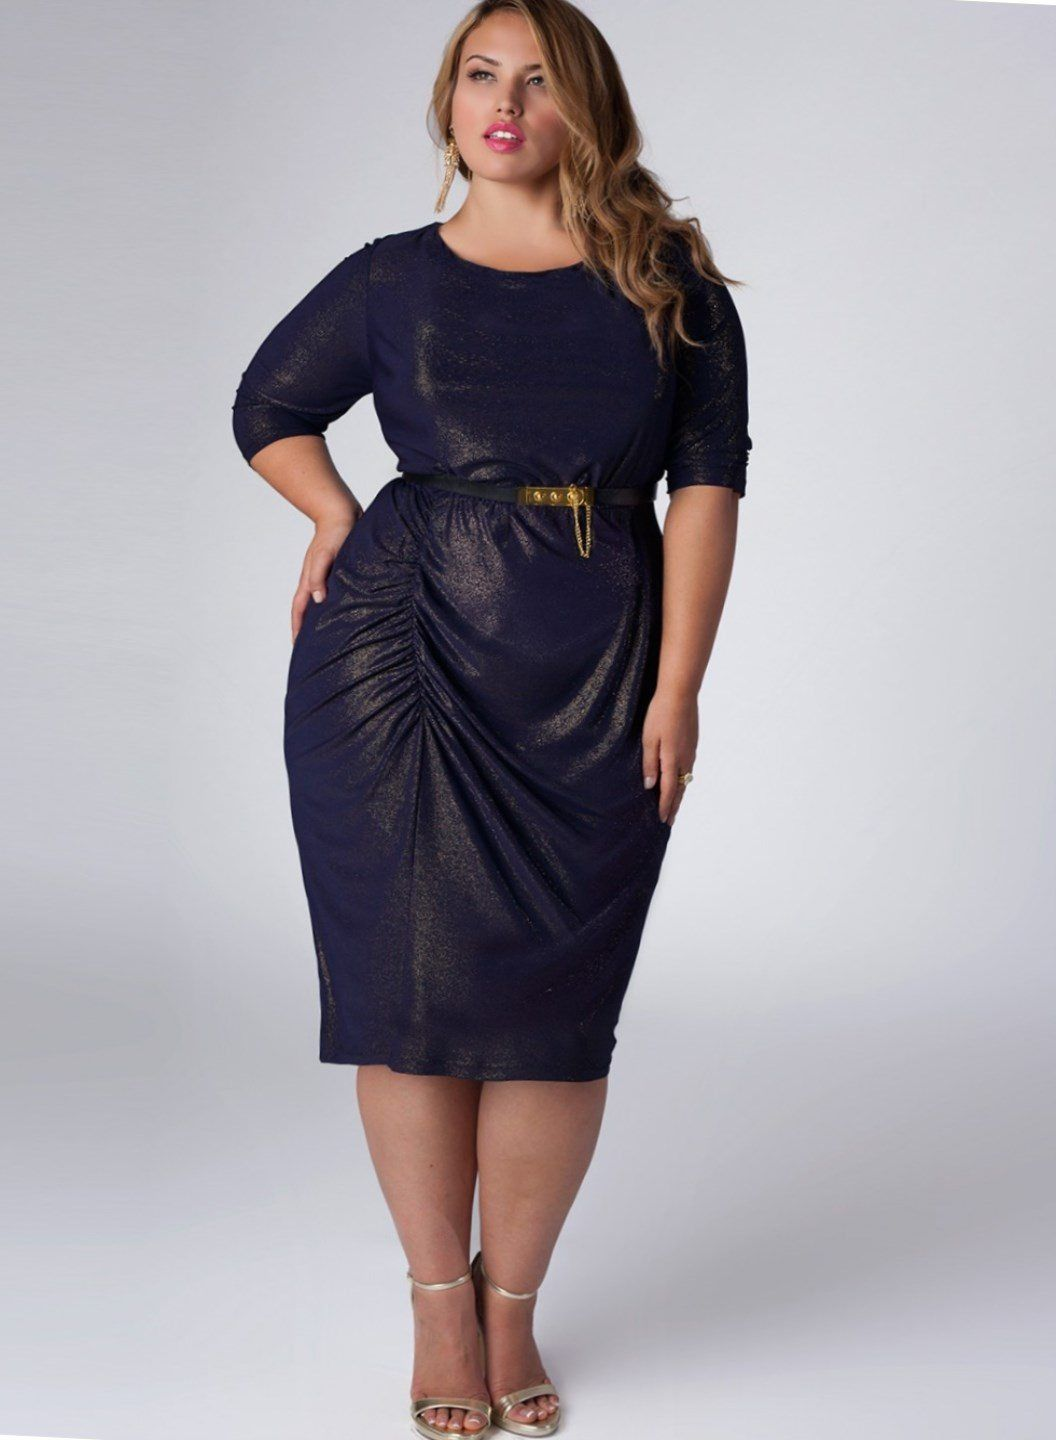 Cheap plus size formal dresses for weddings trendy for Cheap wedding dresses for guests